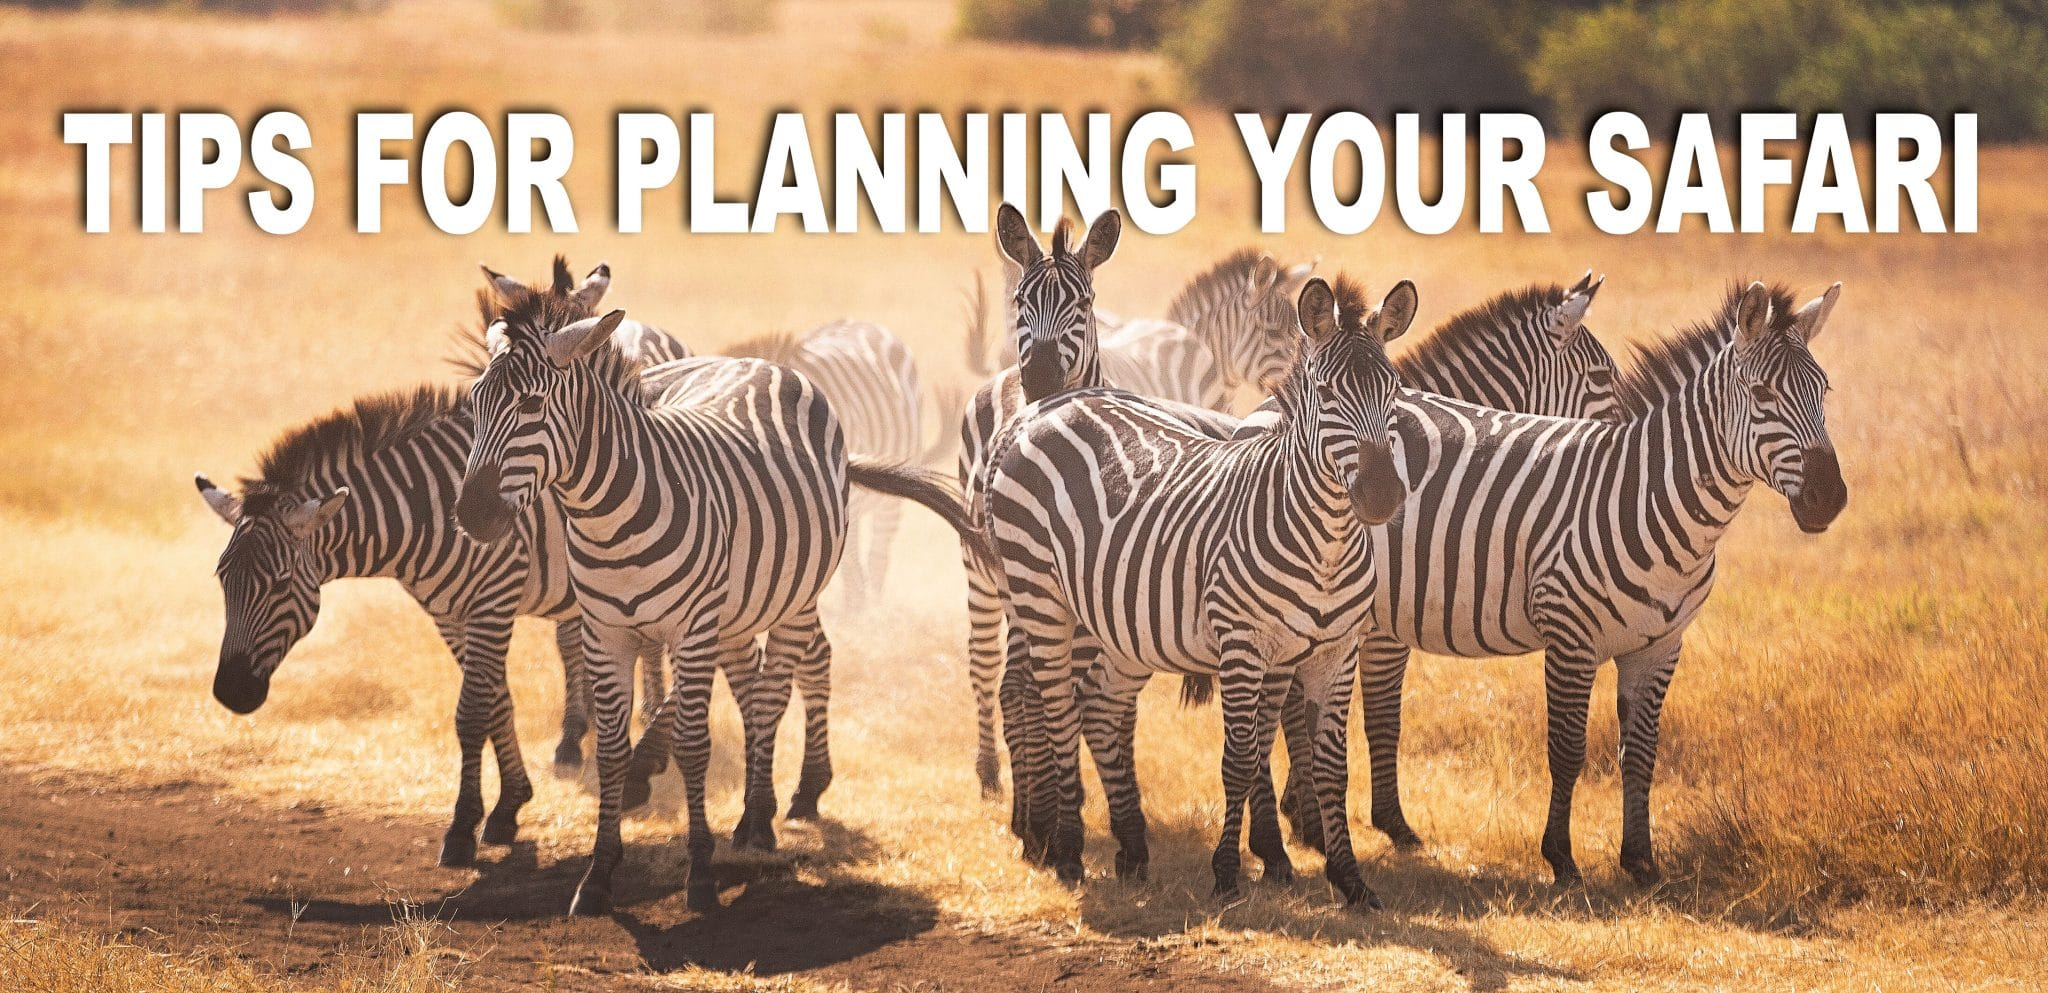 Tips for planning your safari